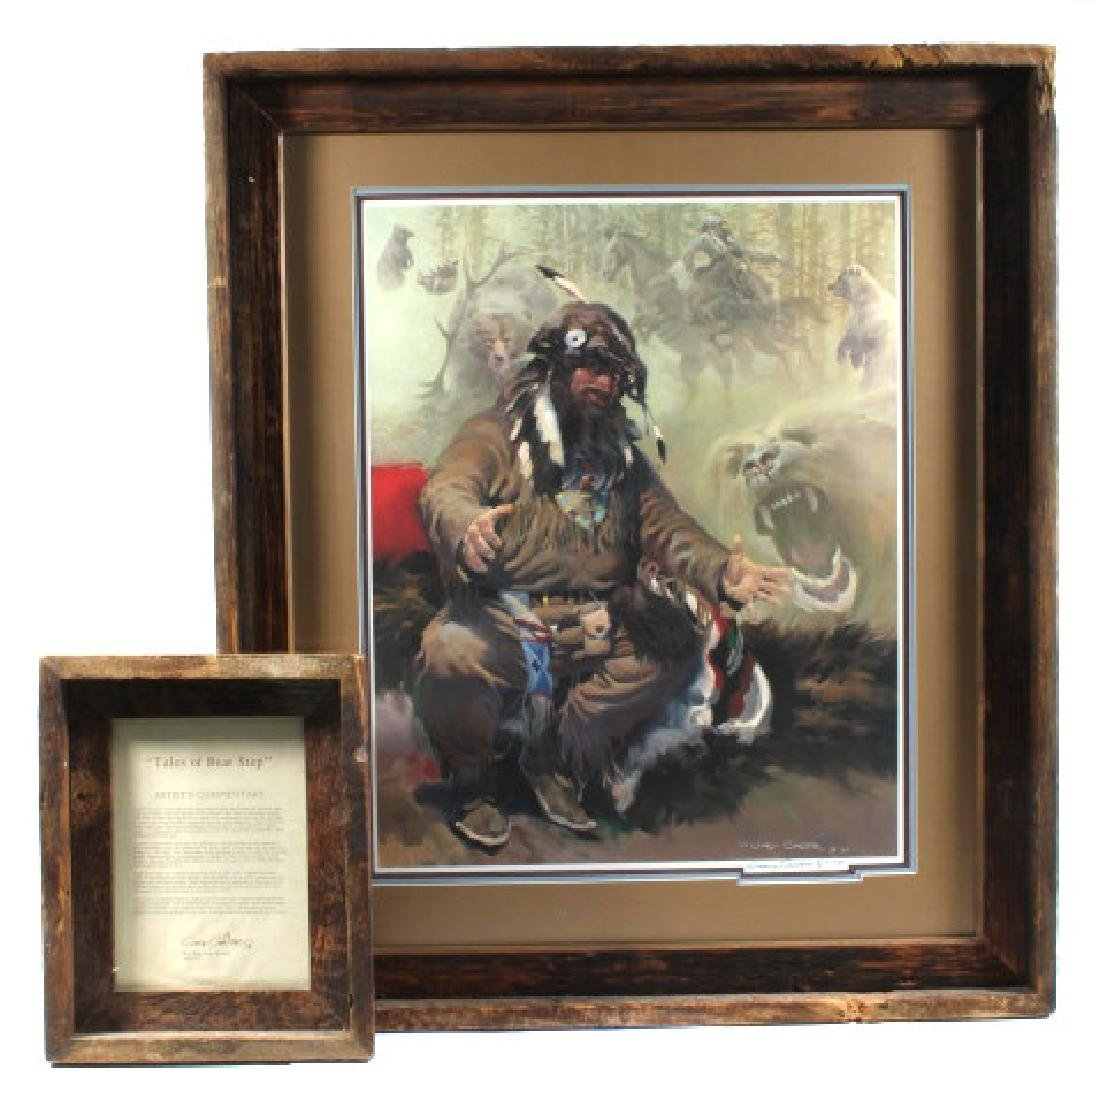 G Carter-Tales of a Bear Step Signed Print 317/850